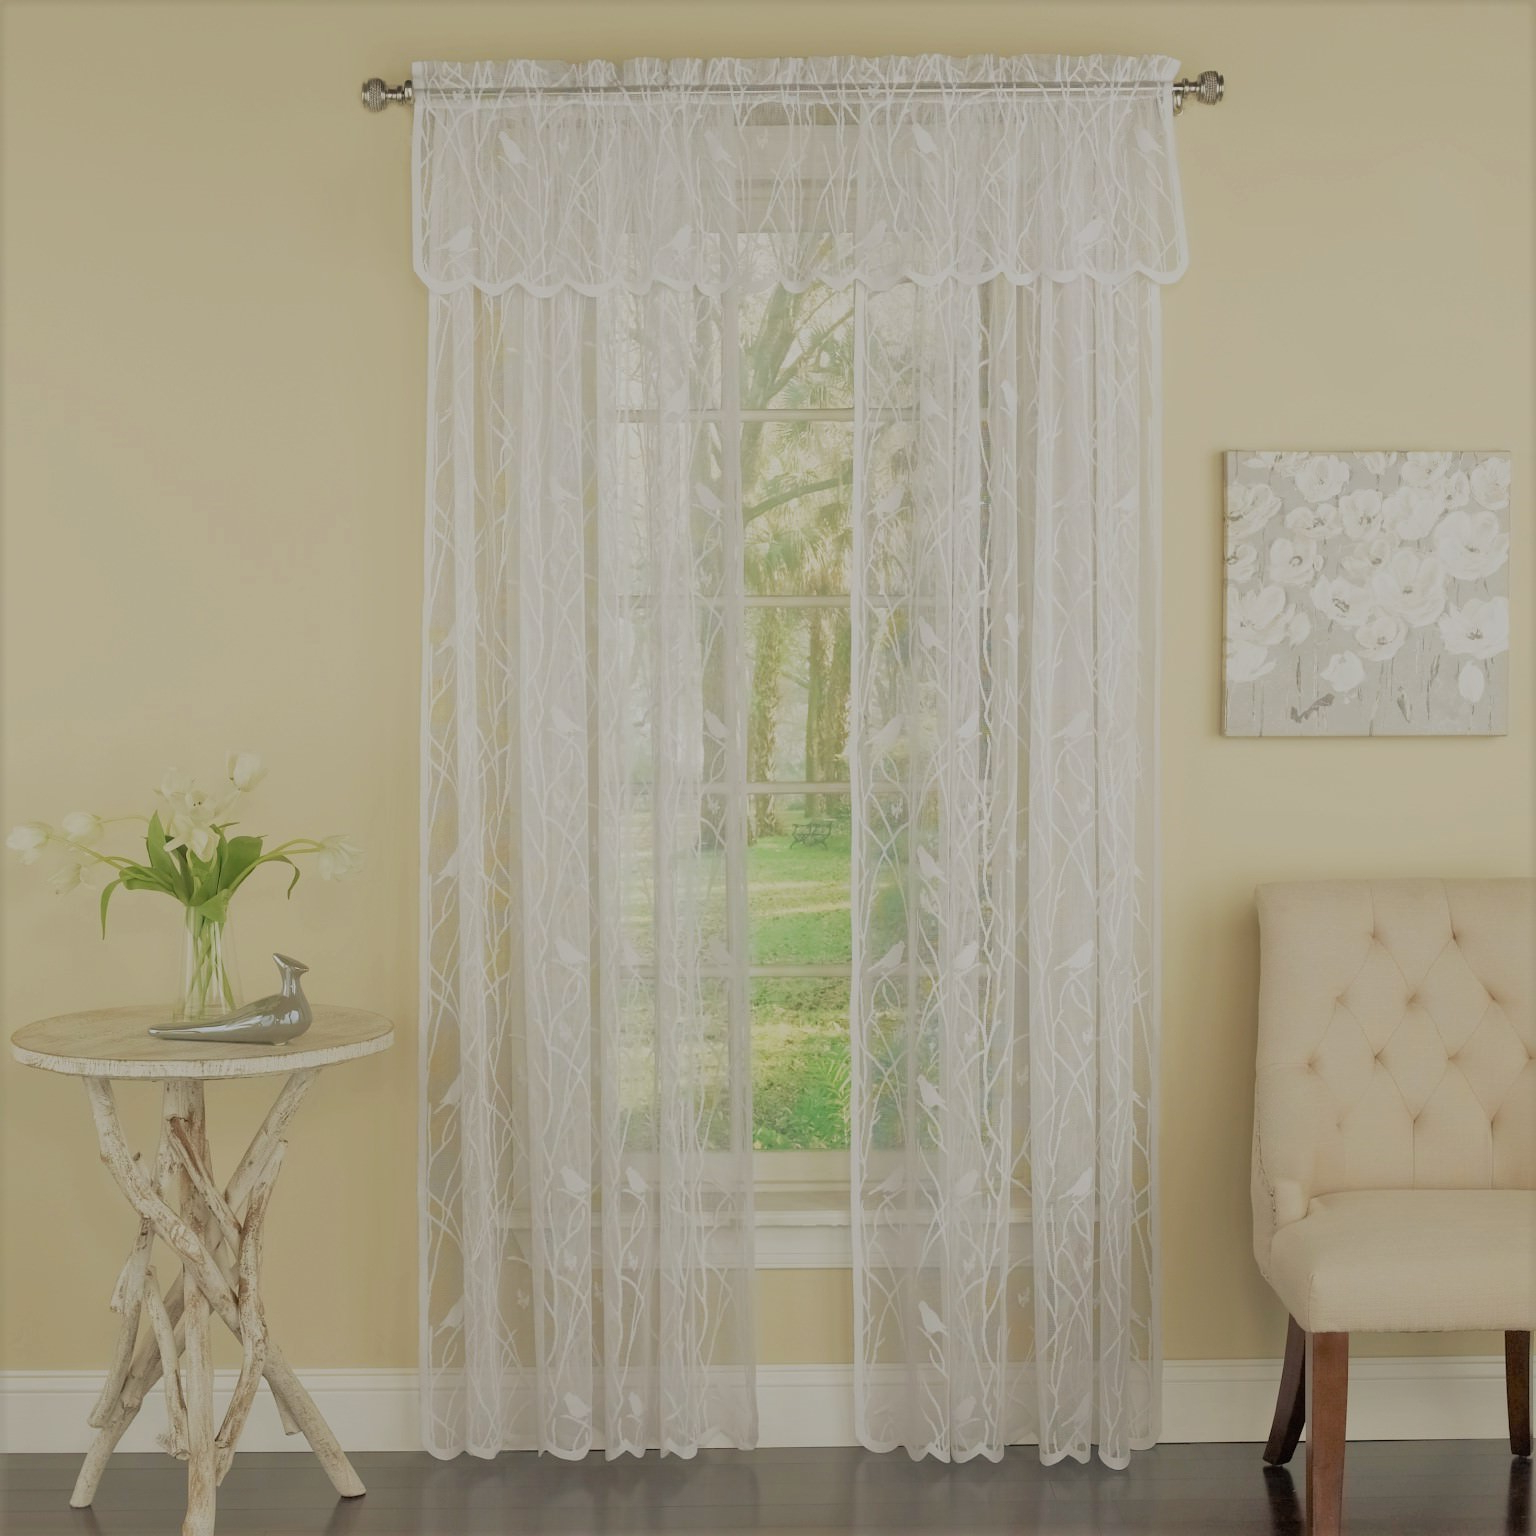 """Widely Used Ivory Knit Lace Bird Motif Window Curtain Inside Canoro Bird Song Sheer Lace Tailored Window Curtain Valance – Ivory (56""""w X 12""""l) (View 11 of 20)"""